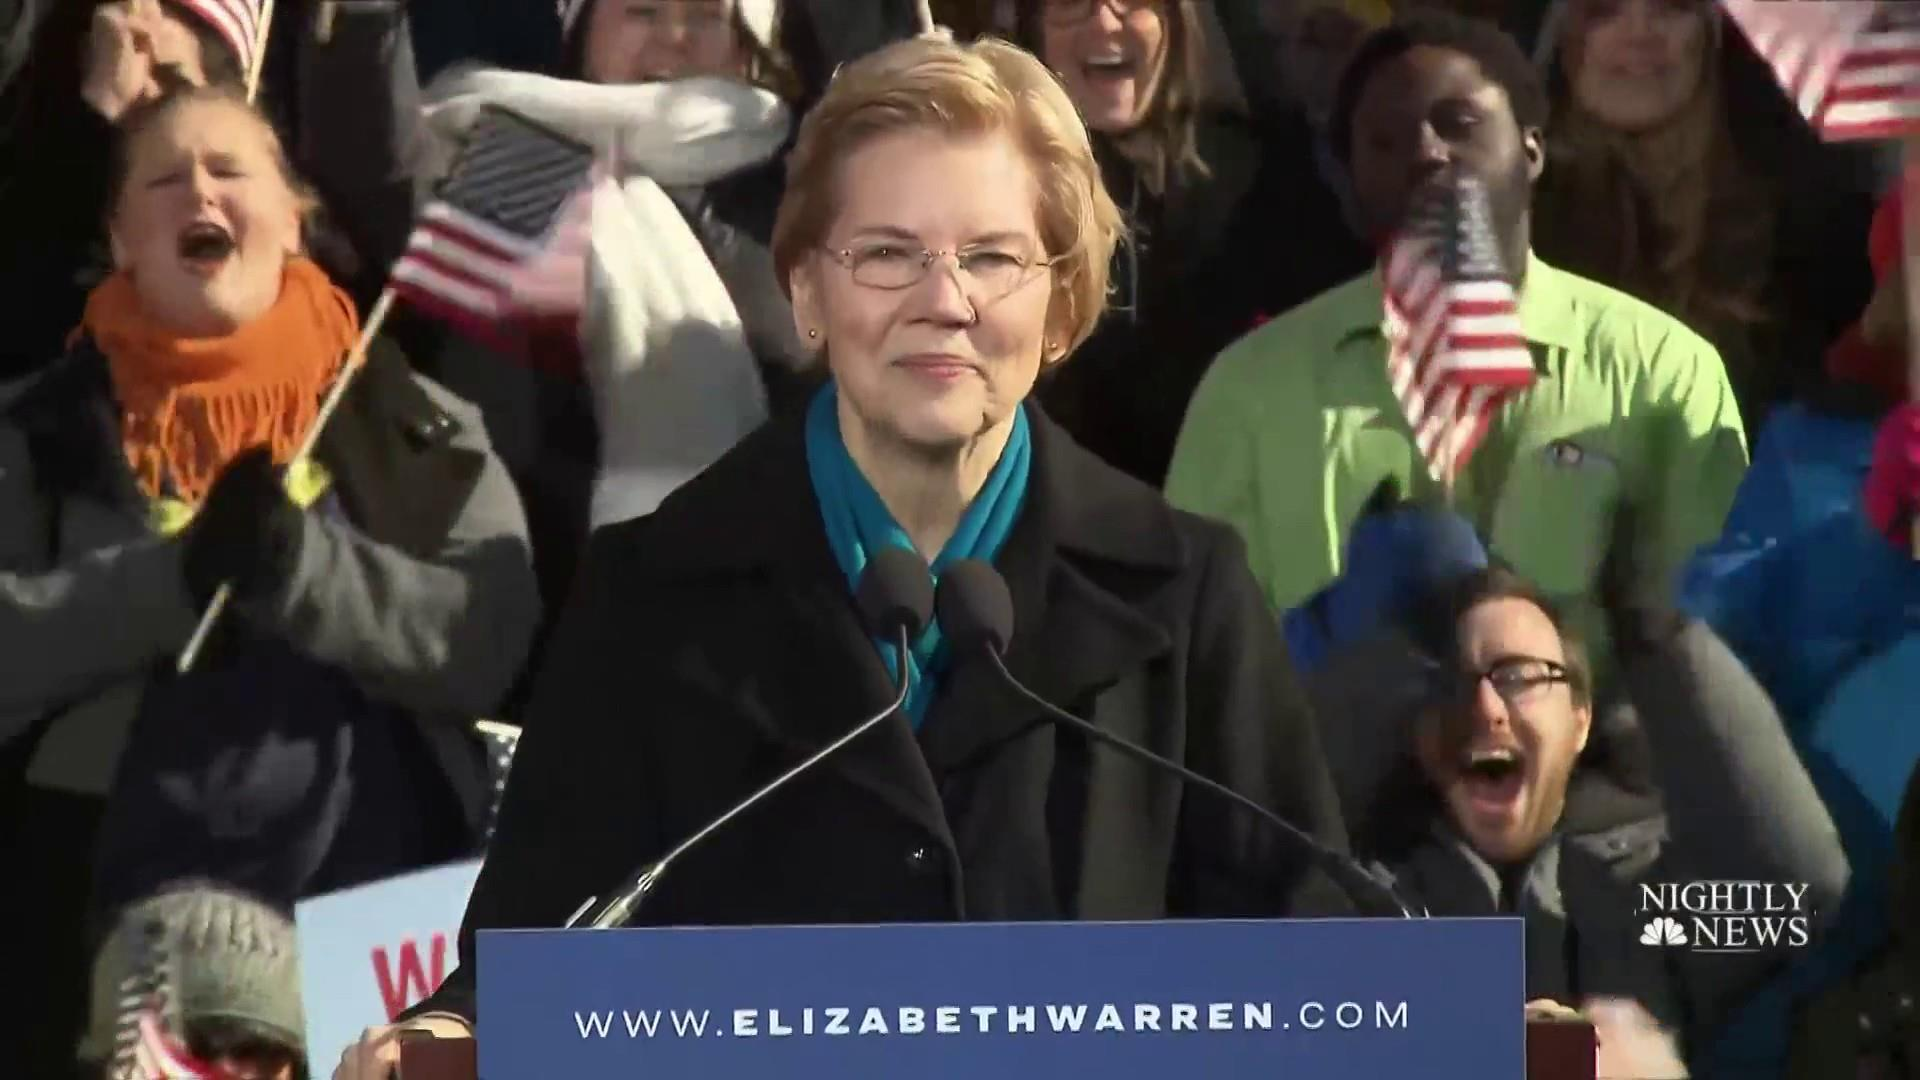 Elizabeth Warren launches 2020 bid with call to ignore 'cowards' and go big